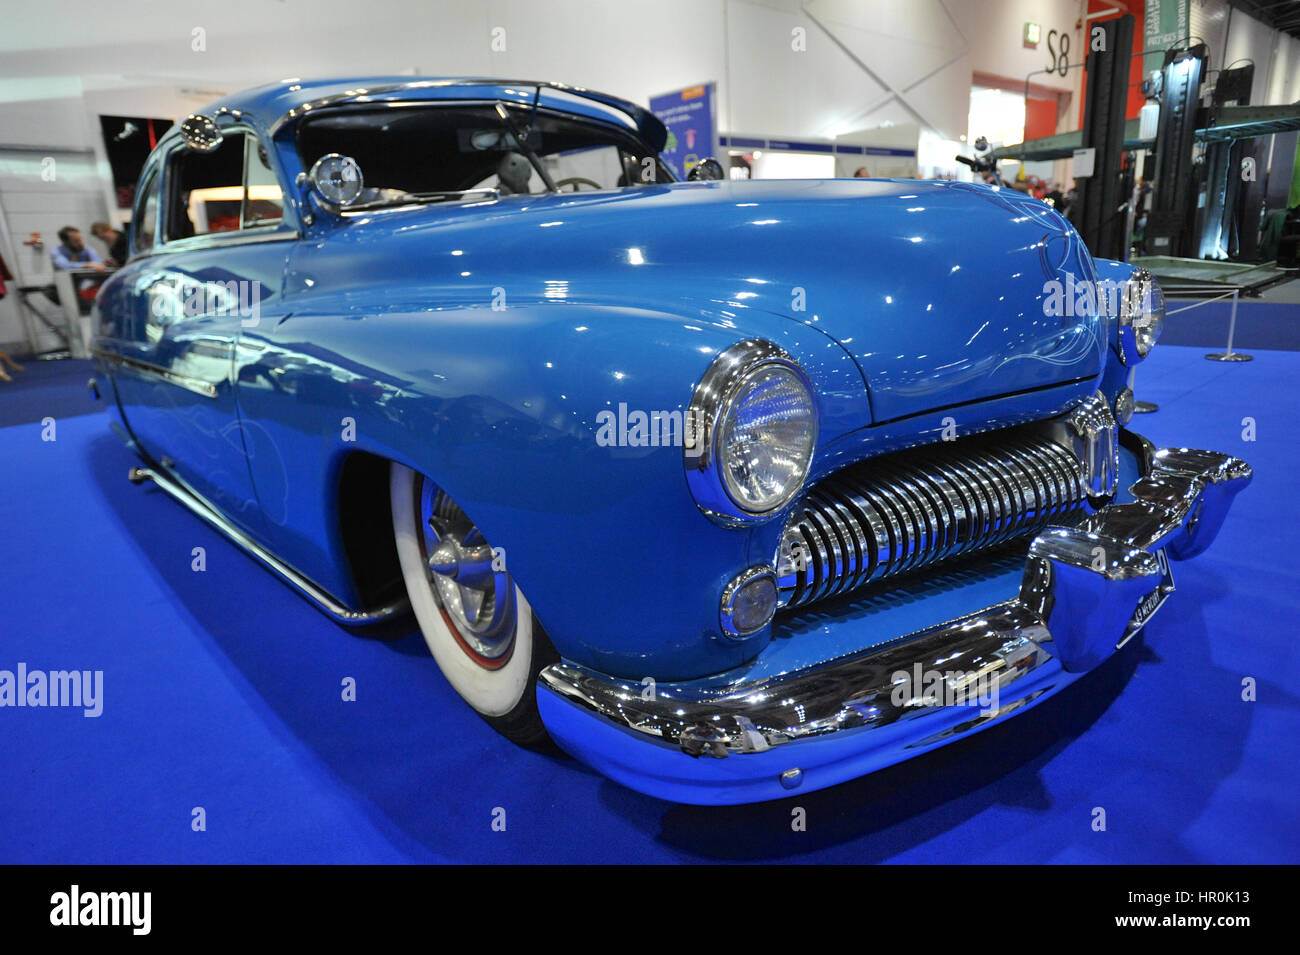 1949 Mercury Stock Photos Images Alamy 1941 Flathead Engine A 42 V8 On Display At The London Classic Car Show Which Is